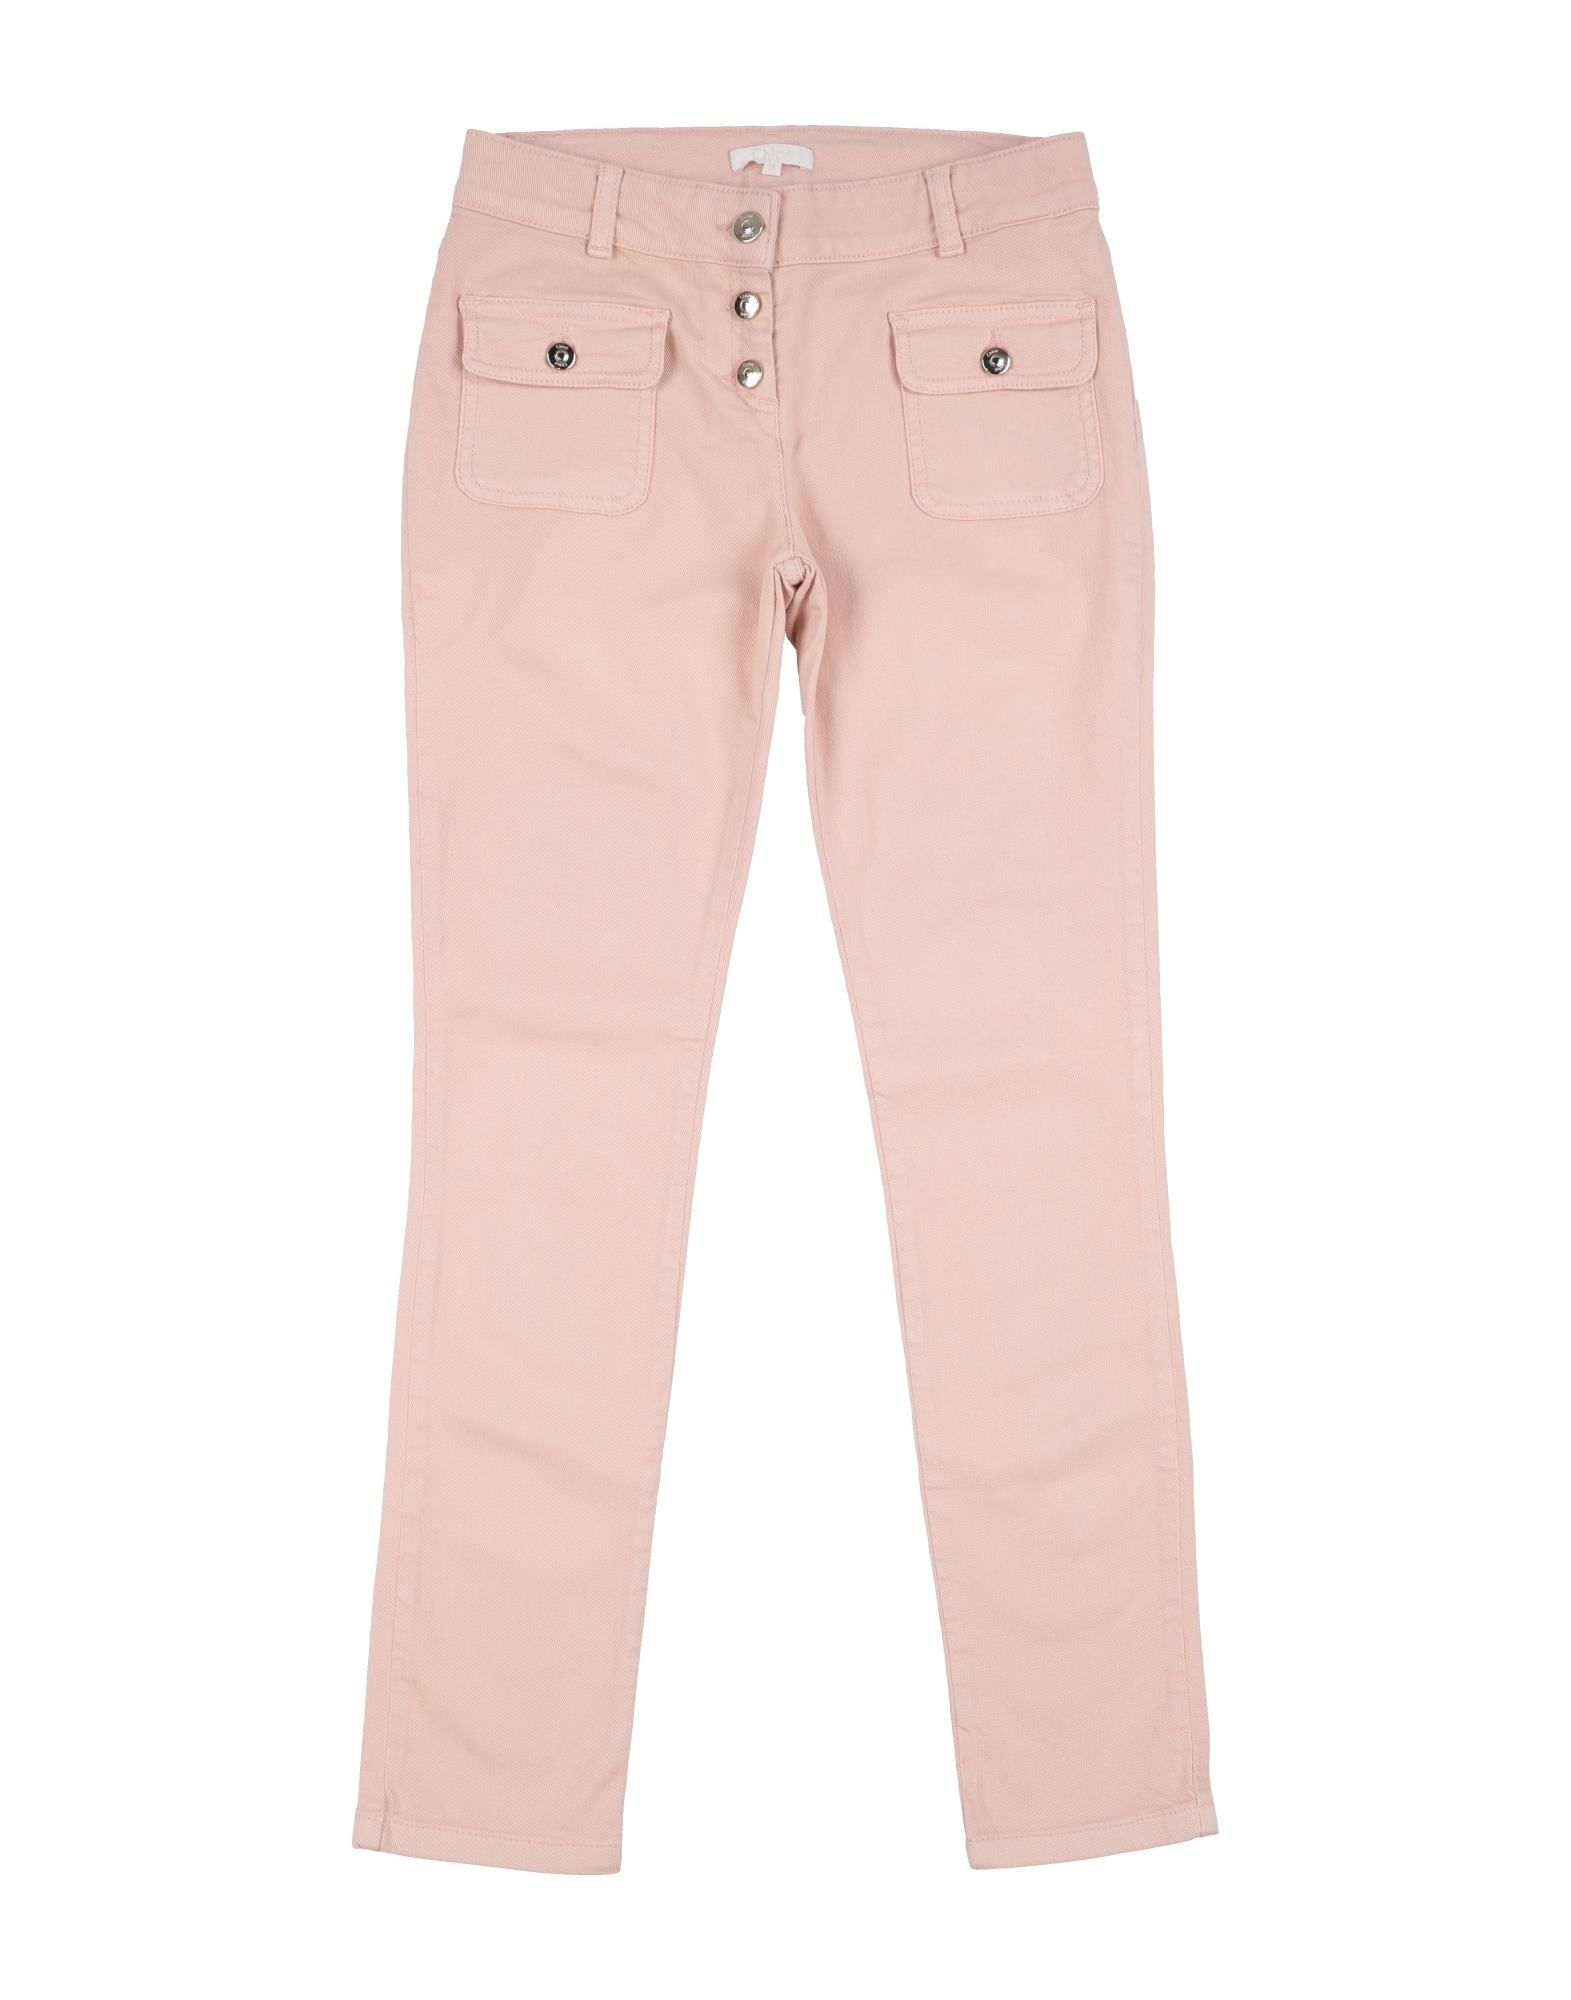 CHLOÉ | CHLOÉ Denim Pants 42740002 | Goxip